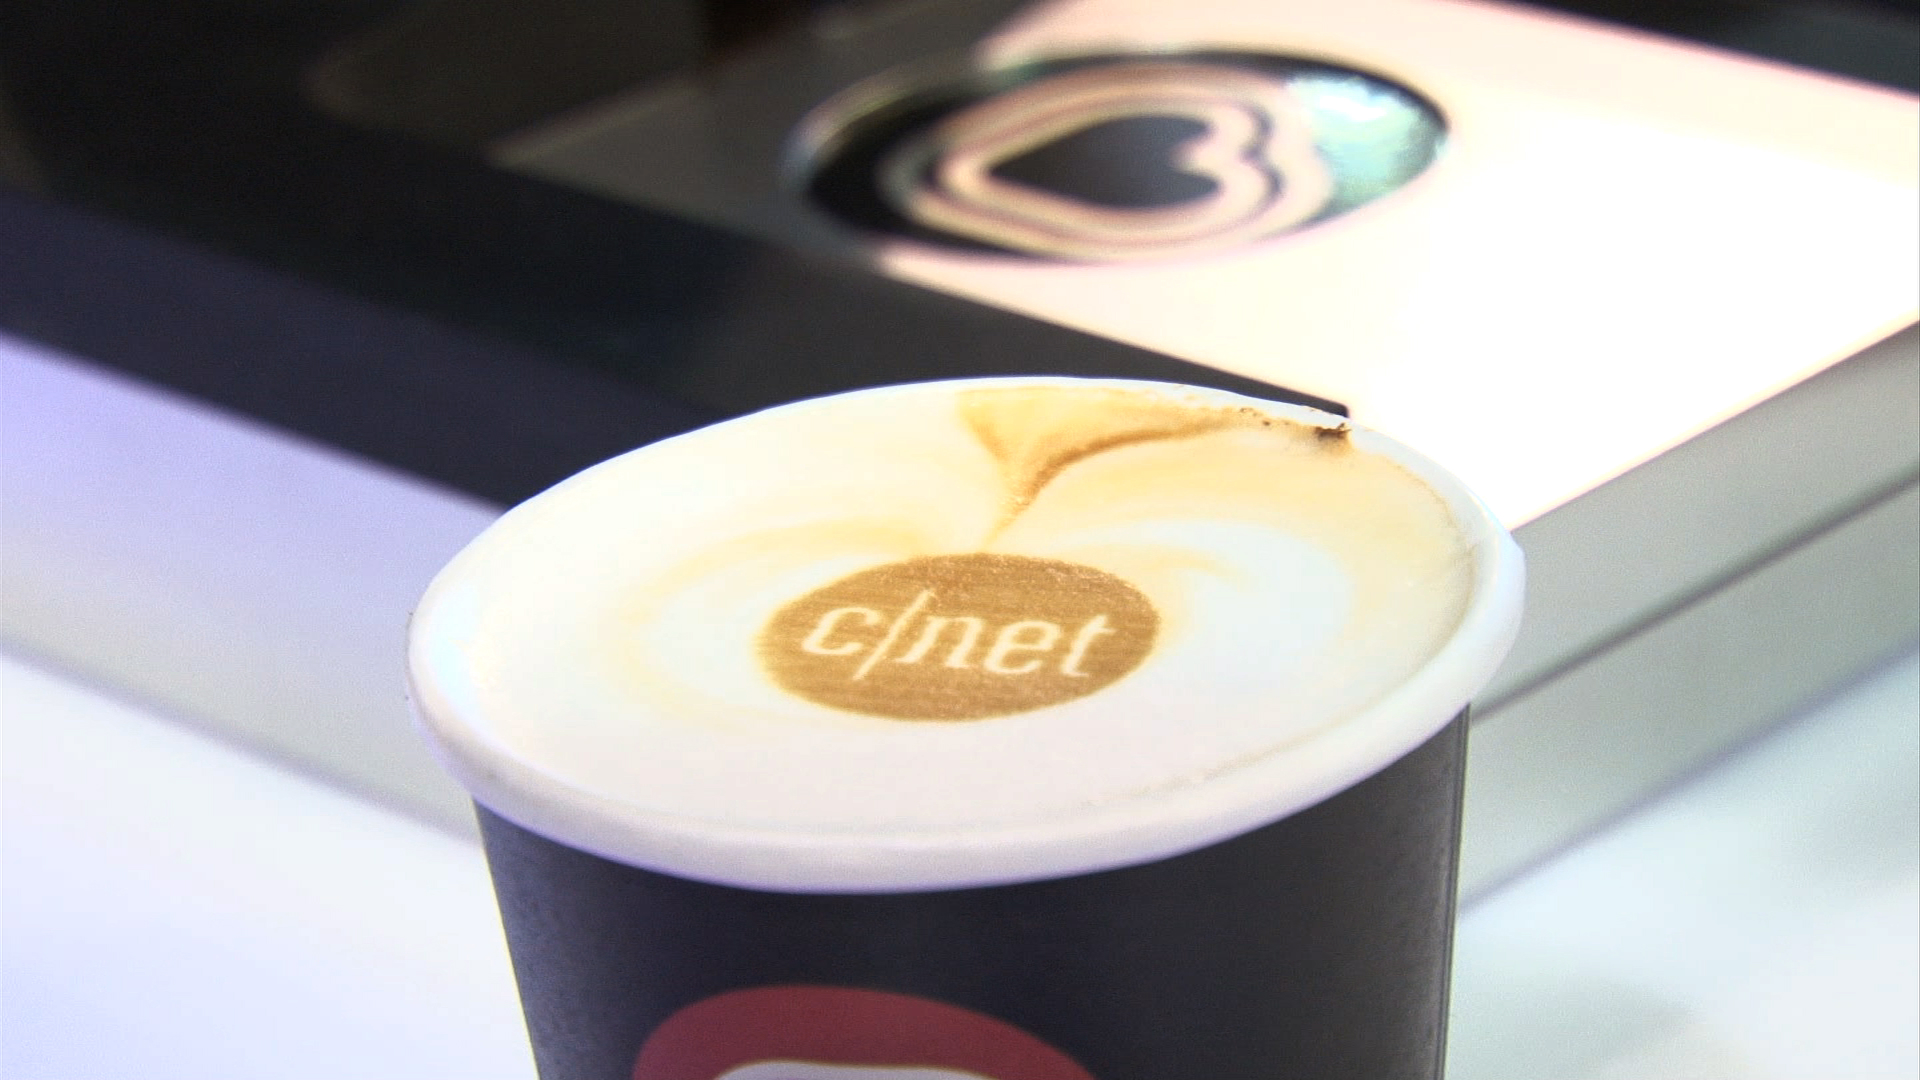 Video: RippleMaker prints on your cup of coffee